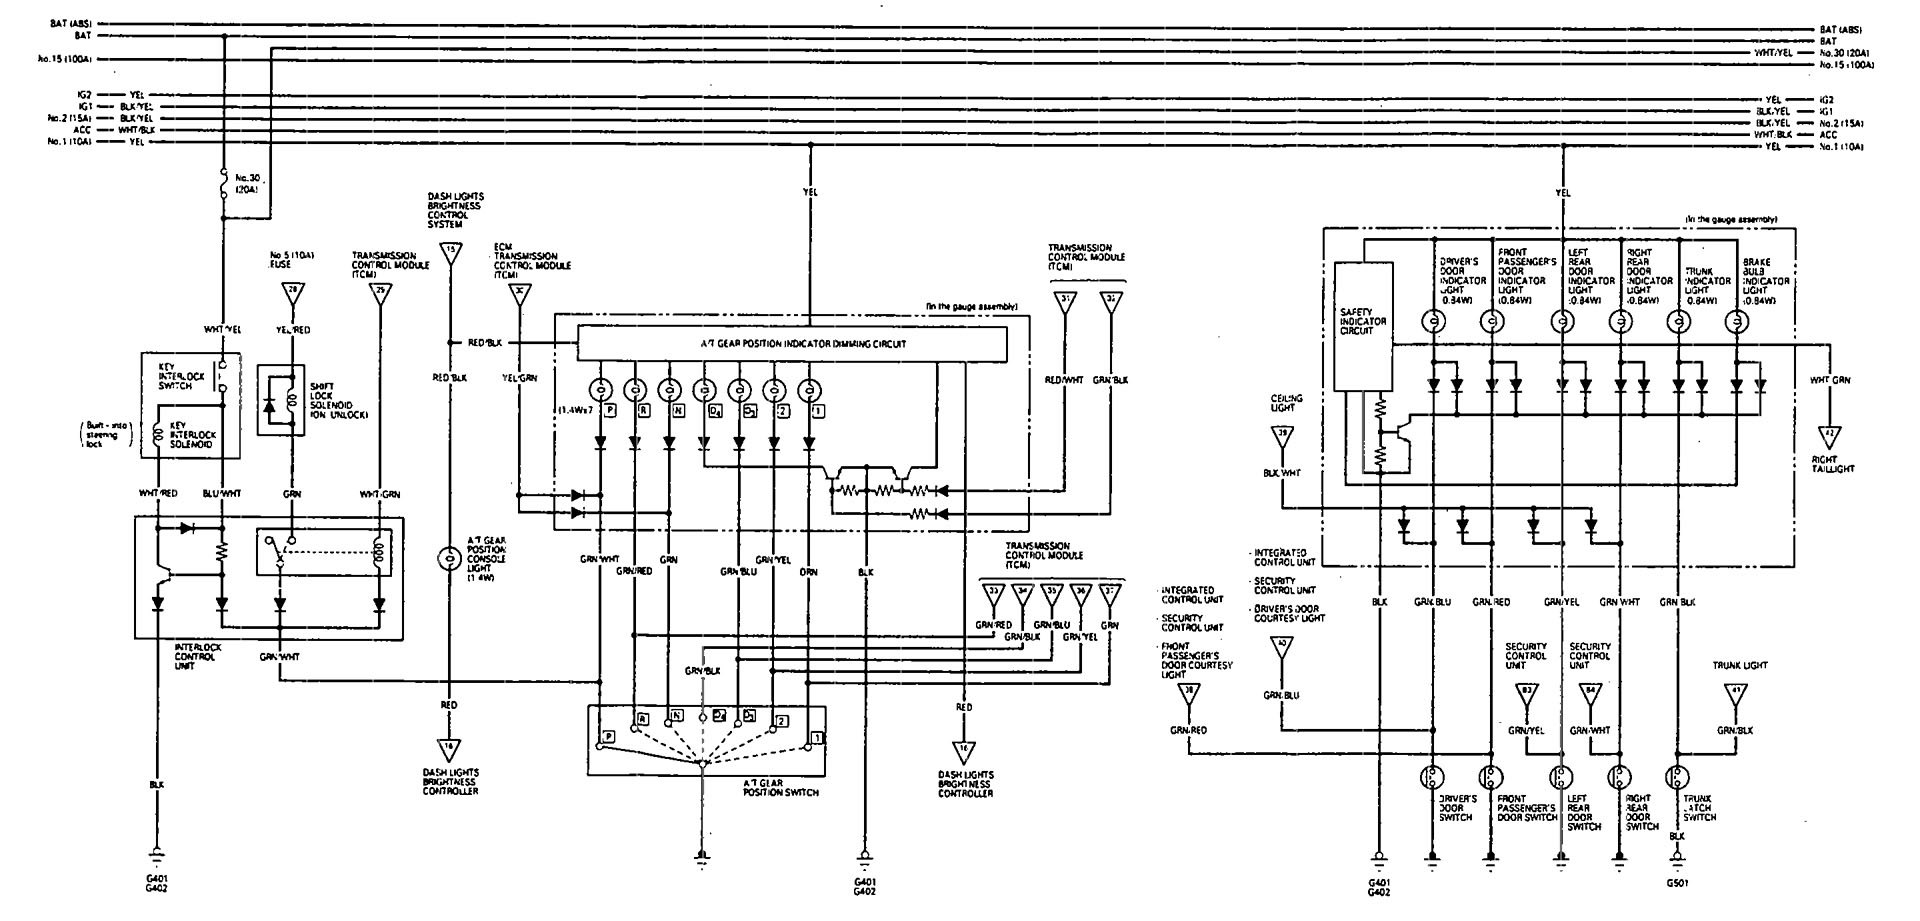 Acura Vigor Stereo Wiring Diagram Great Design Of 94 Legend Speaker 1993 Diagrams Shift Indicator 1990